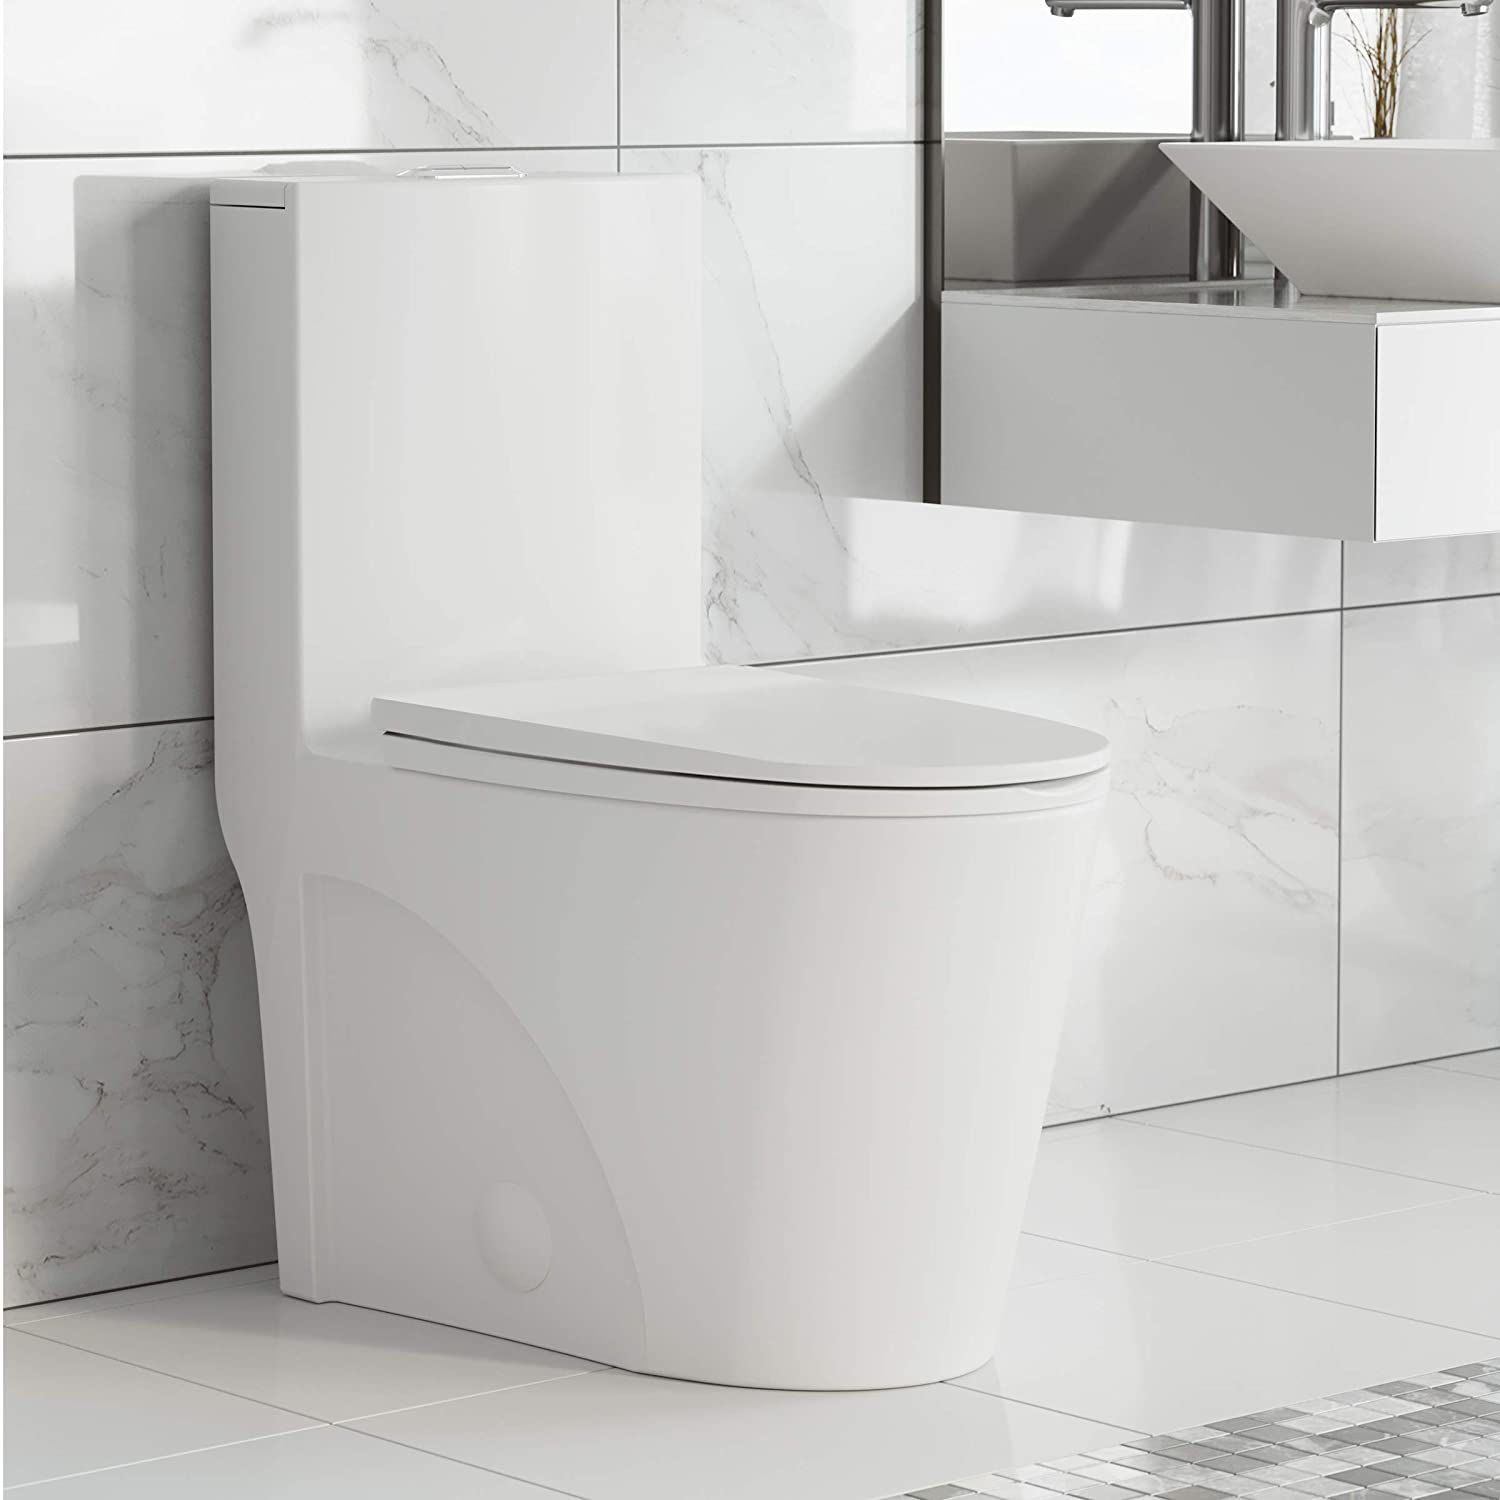 Swiss Madison Well Made Forever SM-1T254 St. Tropez One Piece Toilet, 26.6  x 15 x 31 inches, Glossy White : Amazon.in: Home Improvement